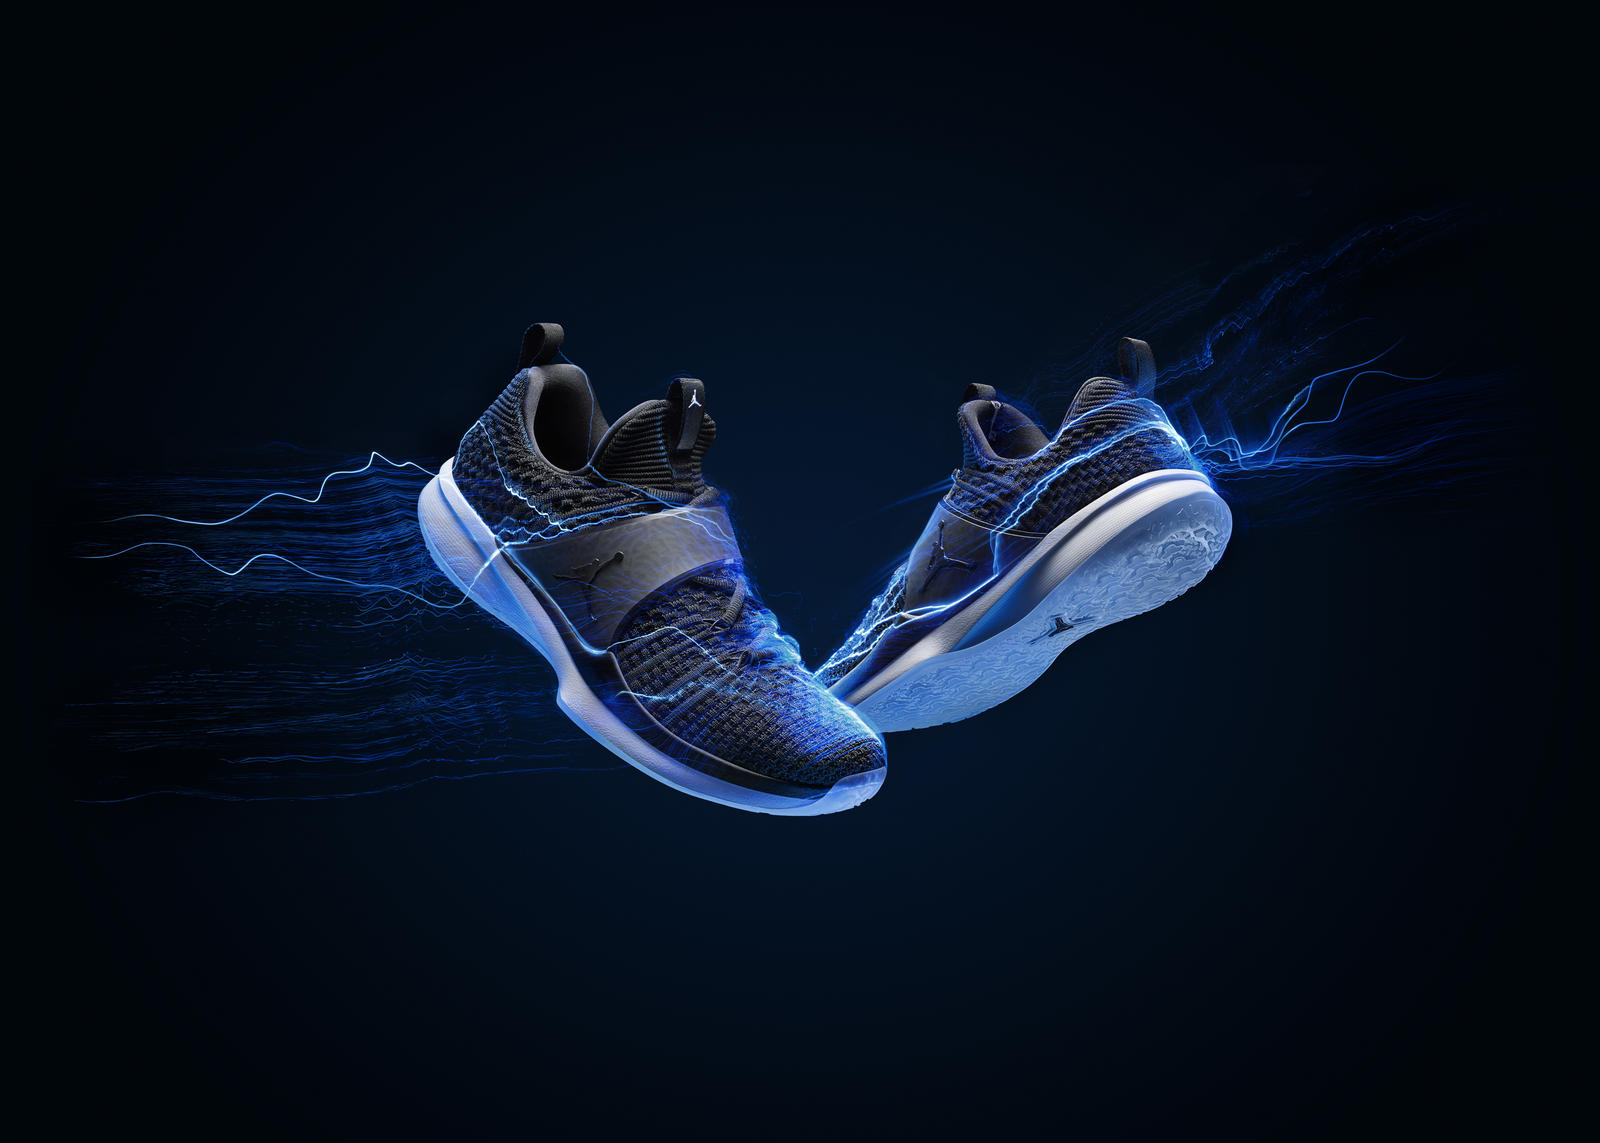 Introducing the Jordan Trainer 2 Flyknit 7